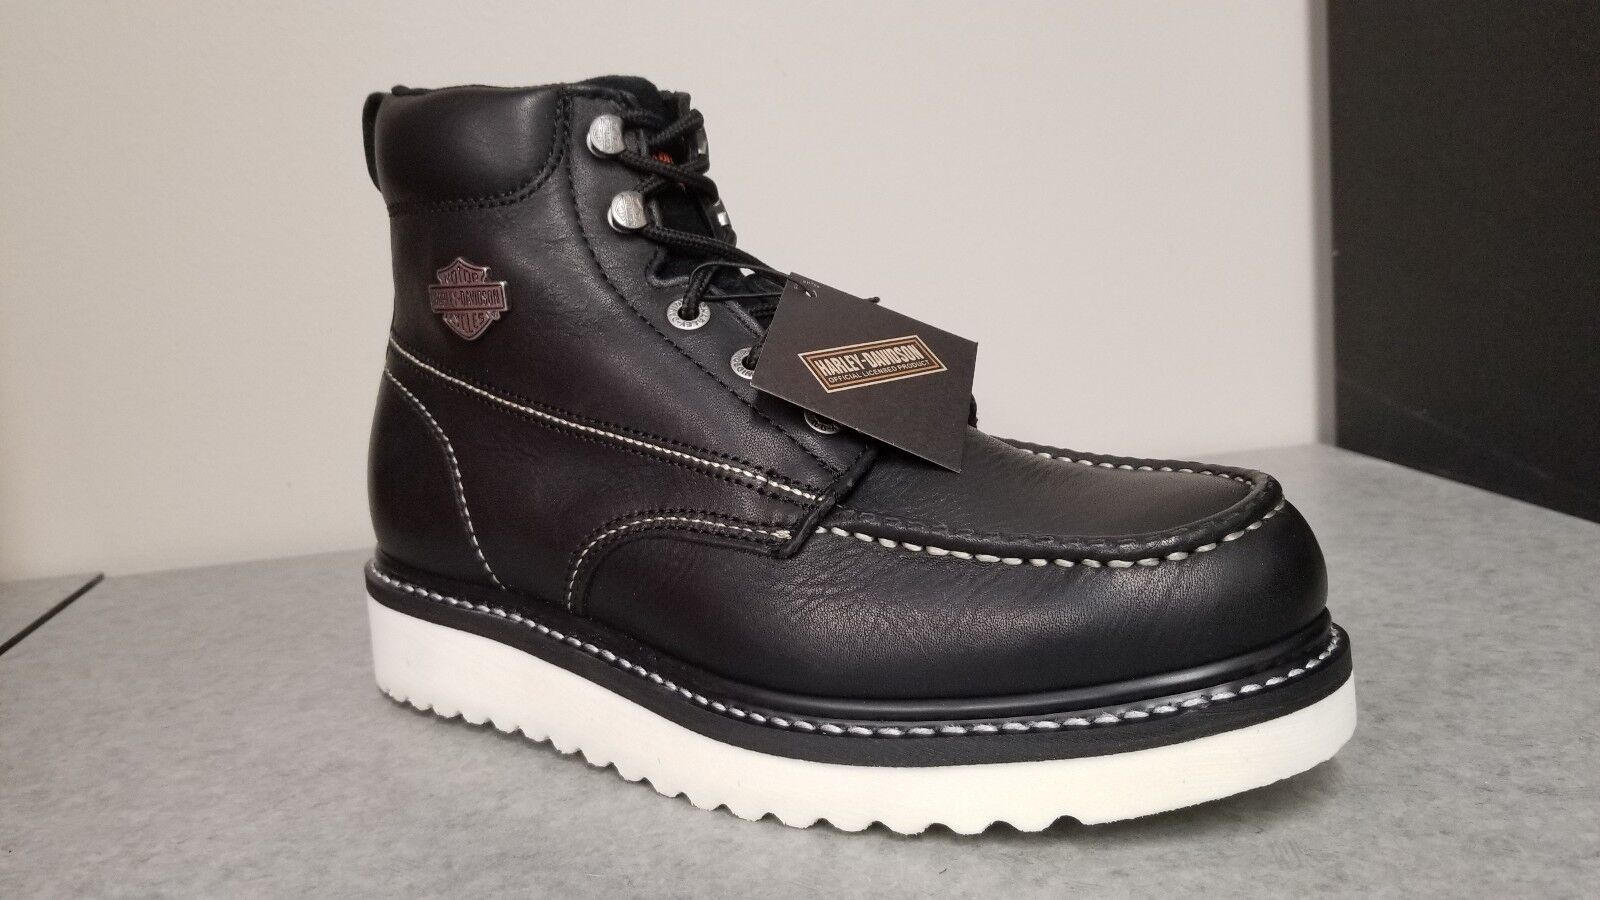 NEW Harley-Davidson Beau shoes   D93135